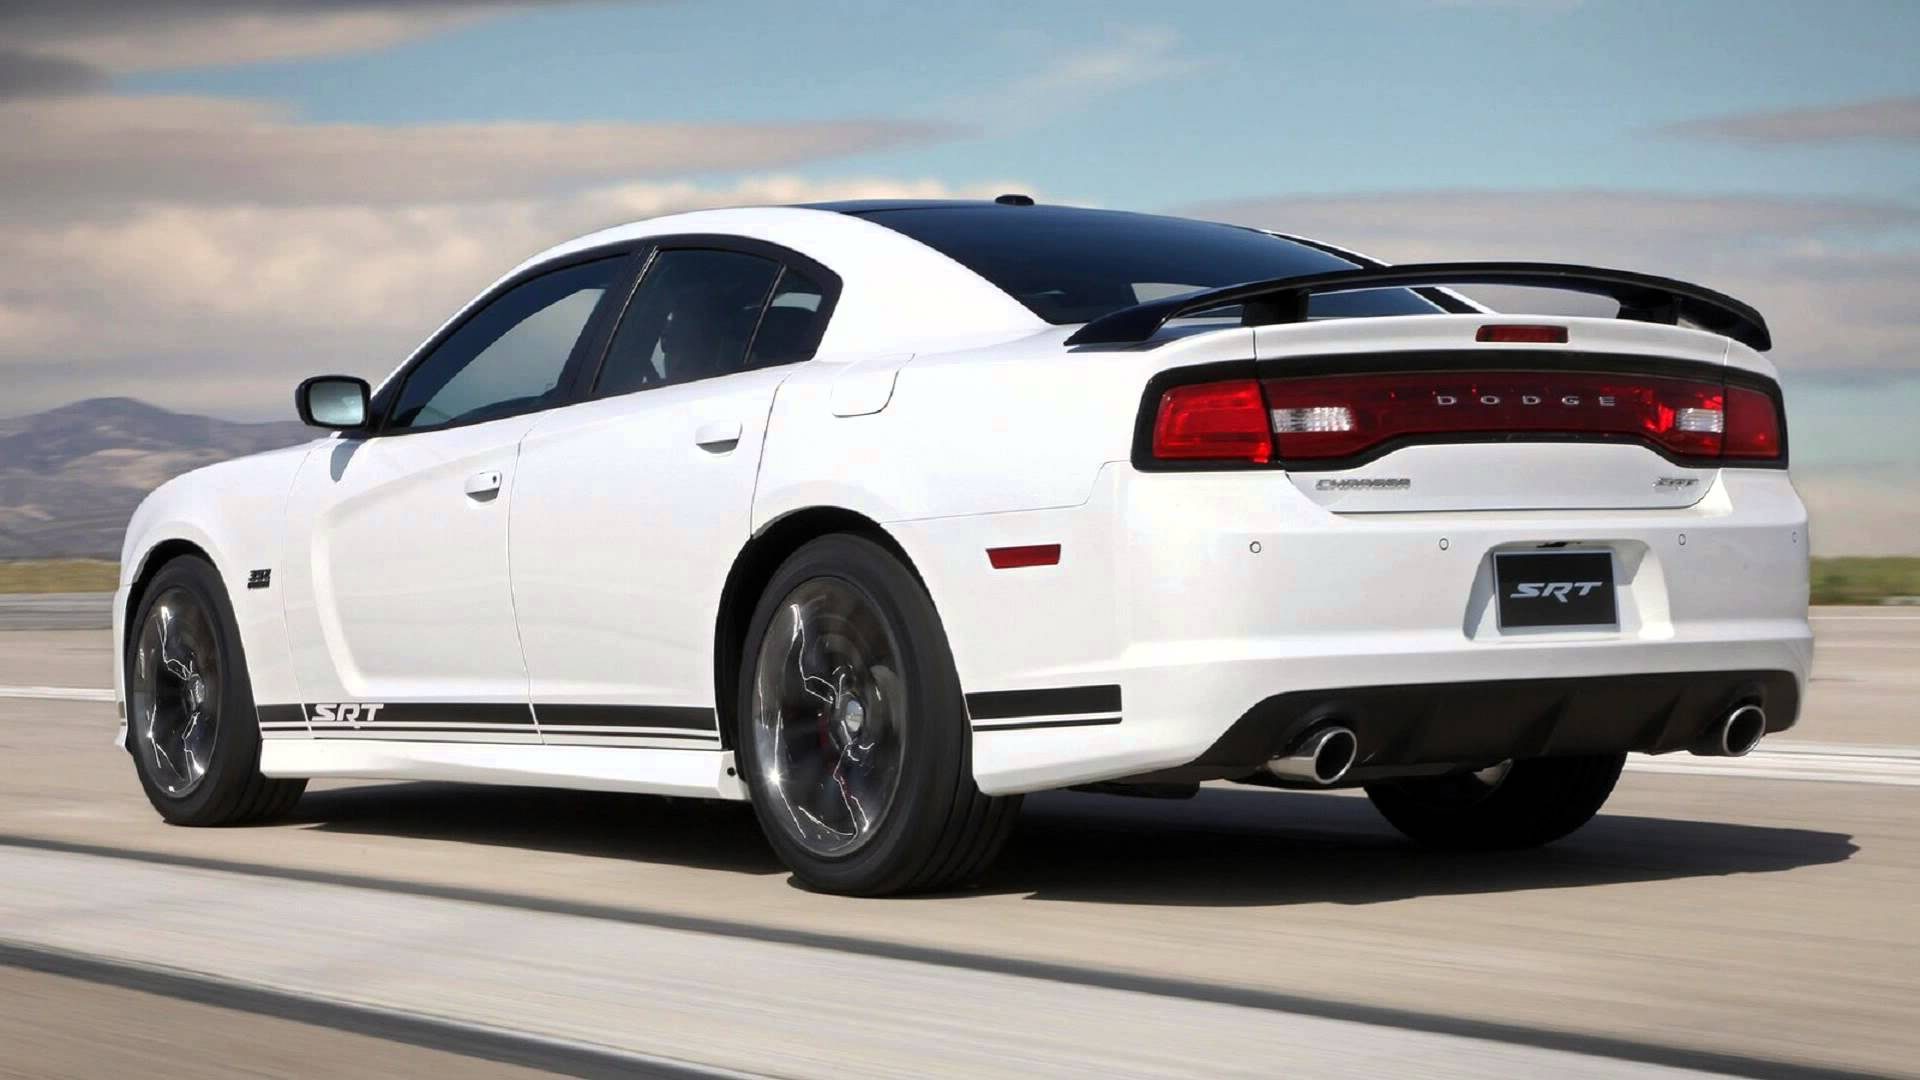 2014 Dodge Charger #14